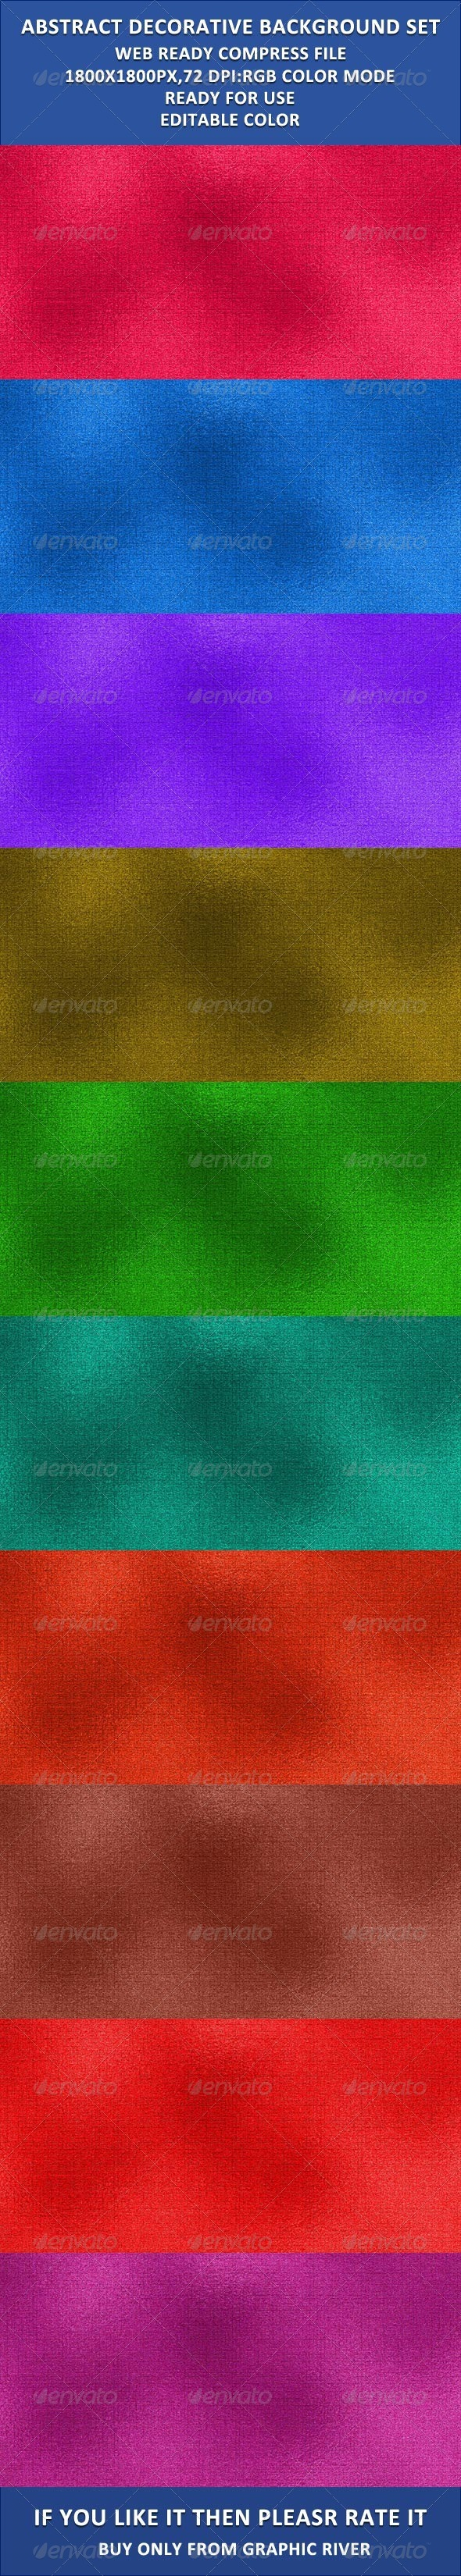 GraphicRiver Decorative Fabric Background Set 3908890